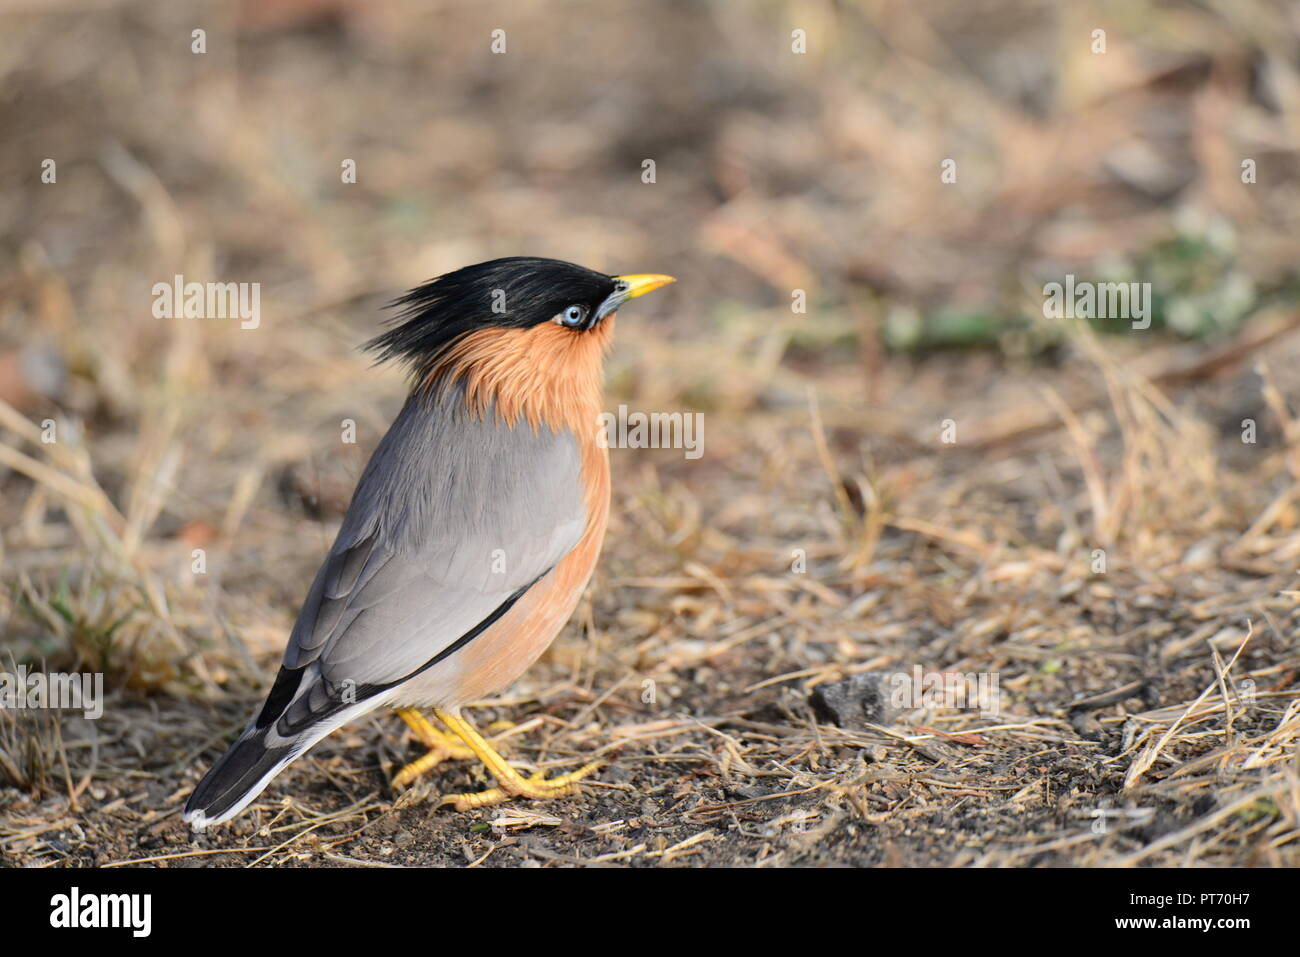 Brahminy Starling in attention pose - Stock Image